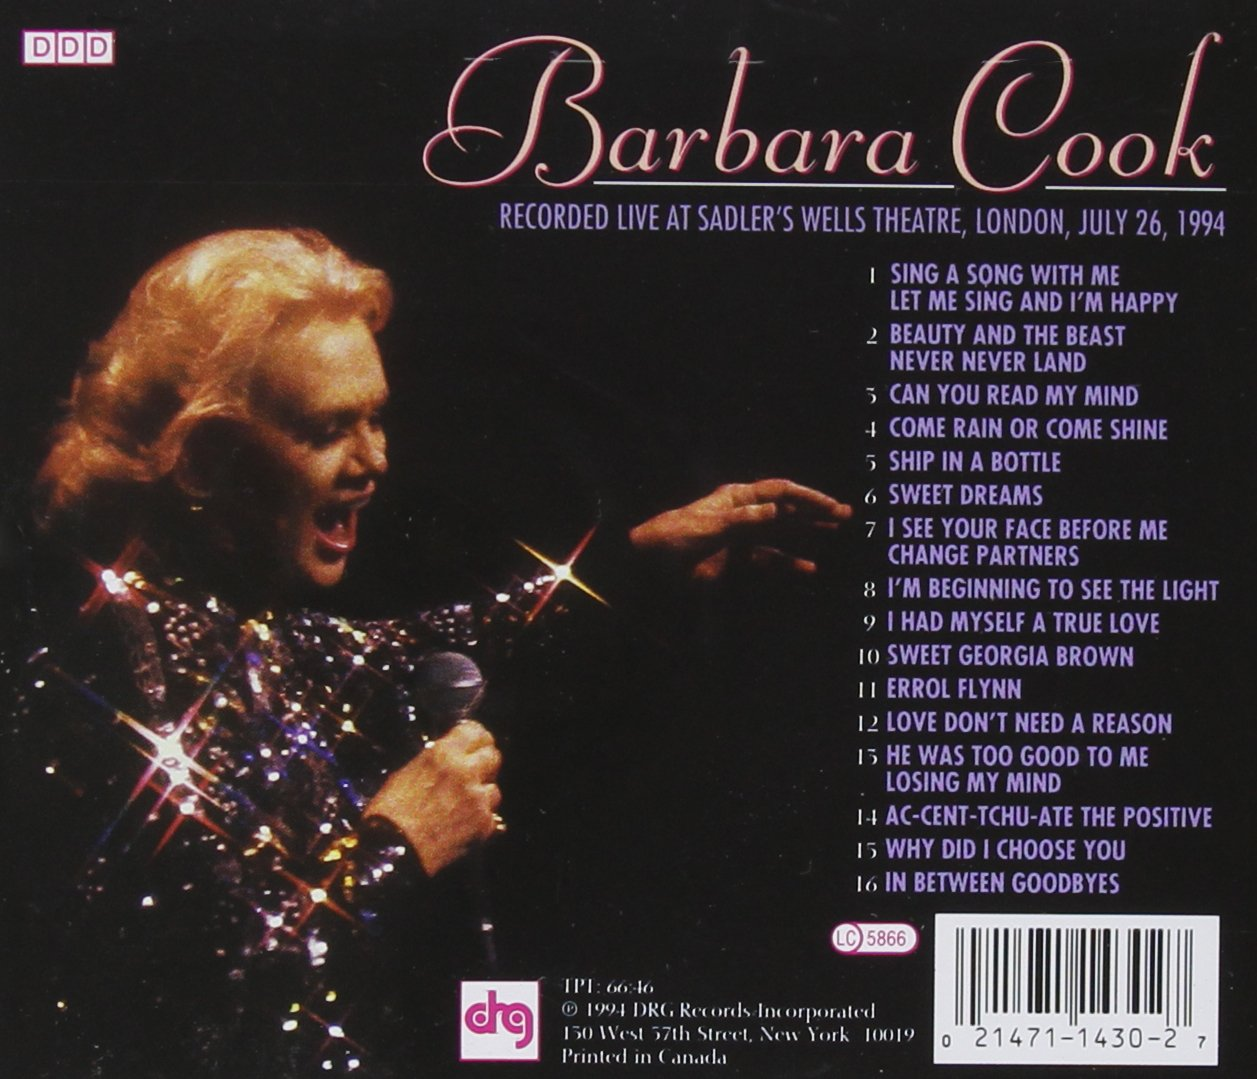 Barbara Cook - Live from London by Drg